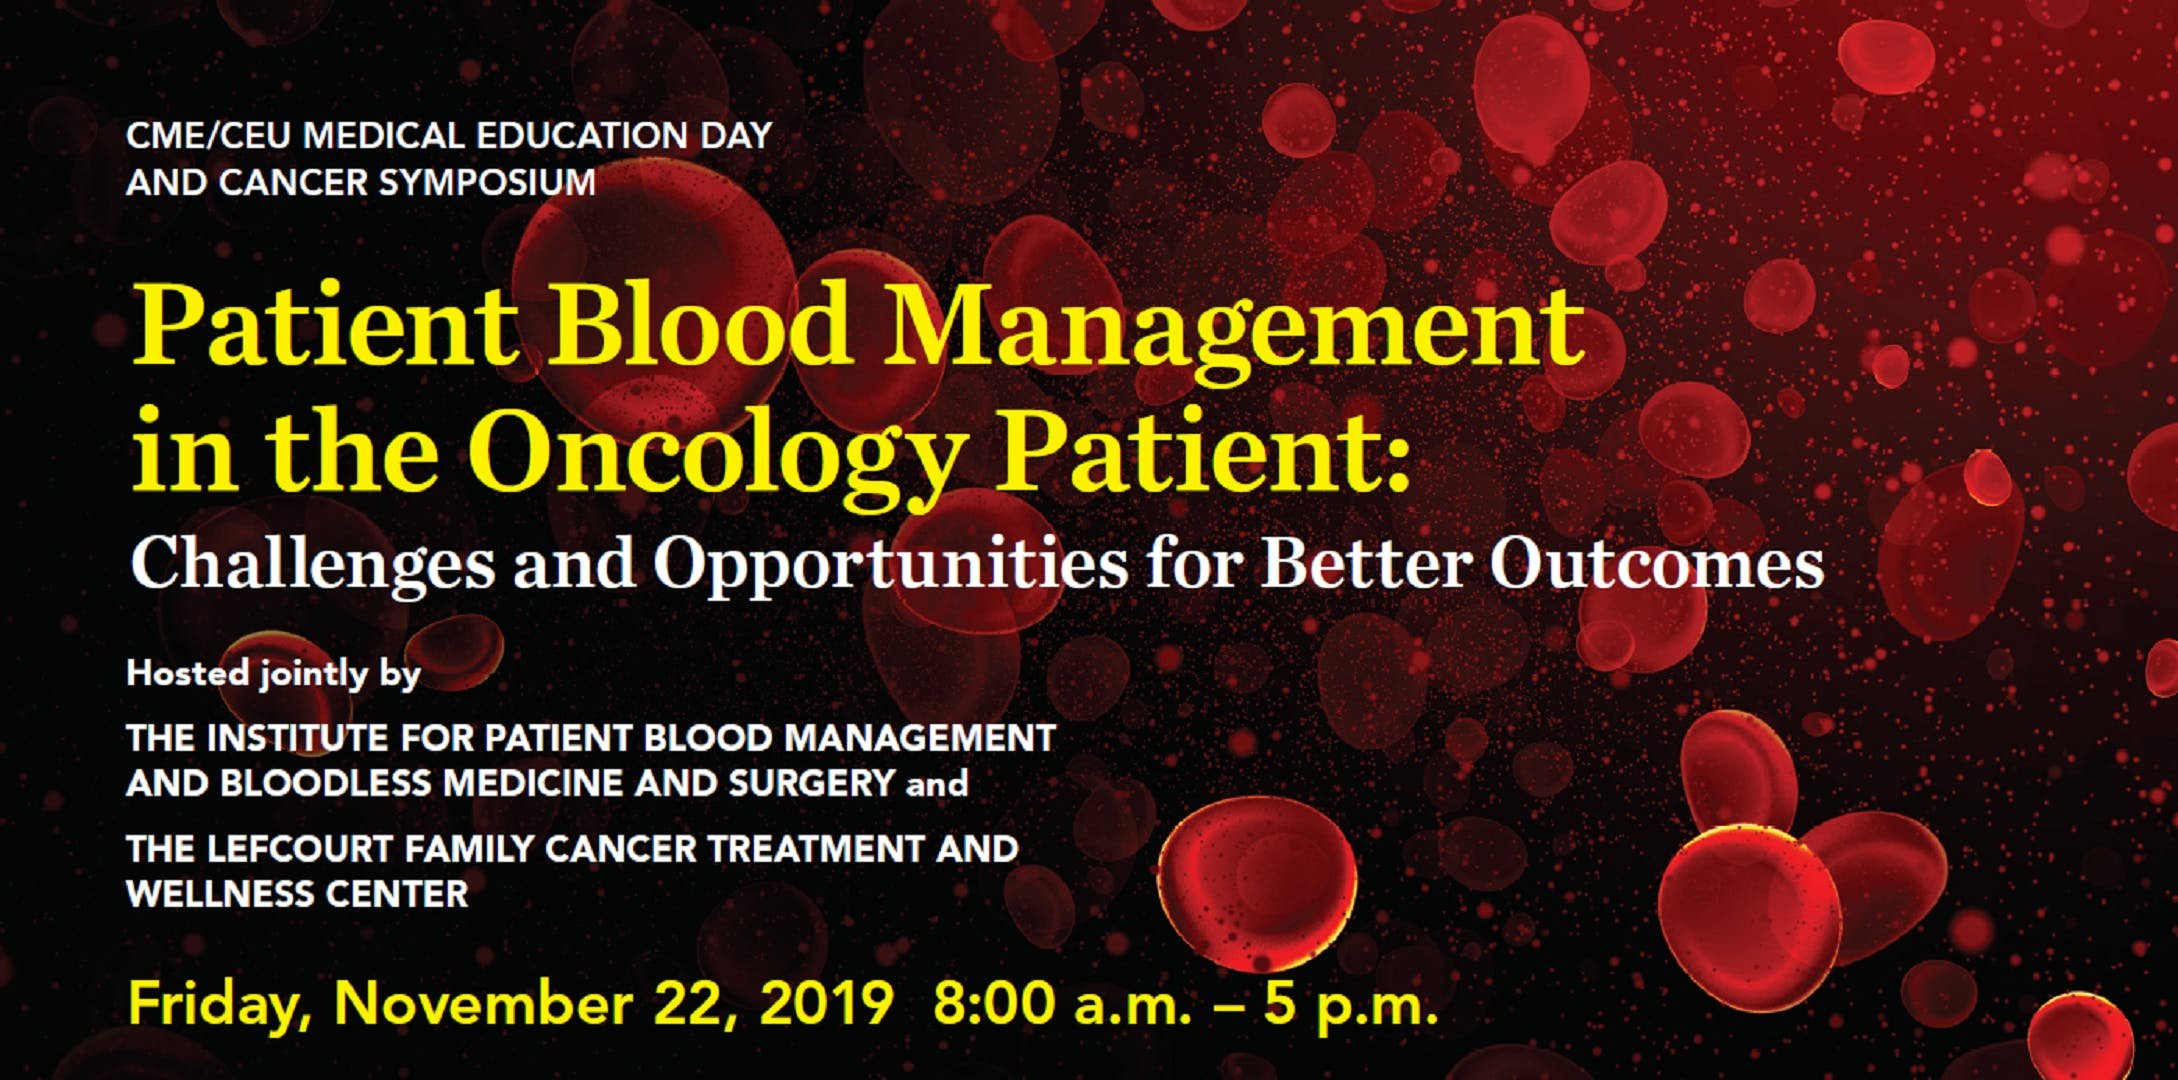 More info: Patient Blood Management in the Oncology Patient